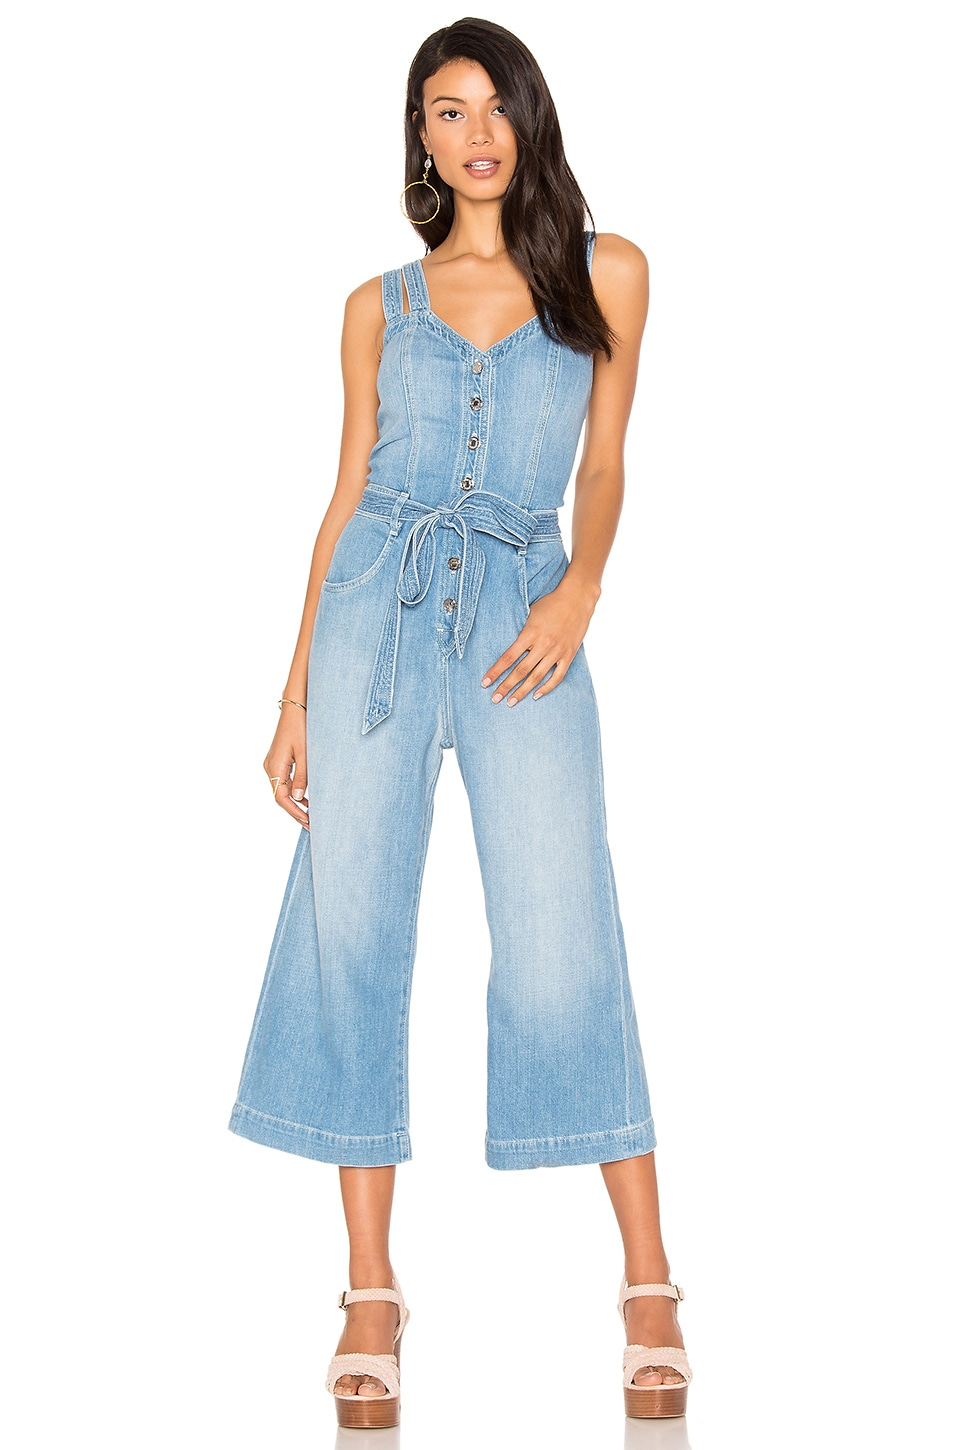 Photo of Culotte Jumpsuit by 7 For All Mankind on sale